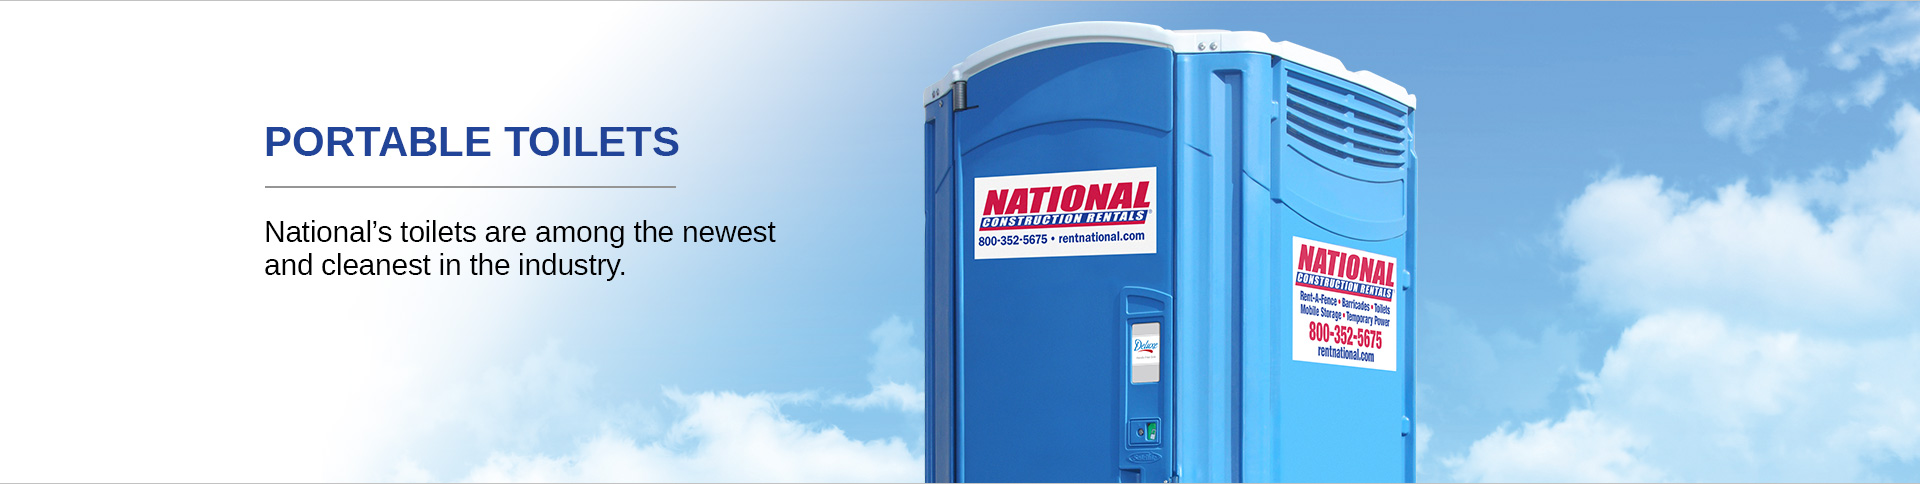 Portable Toilet Rental for Special Events